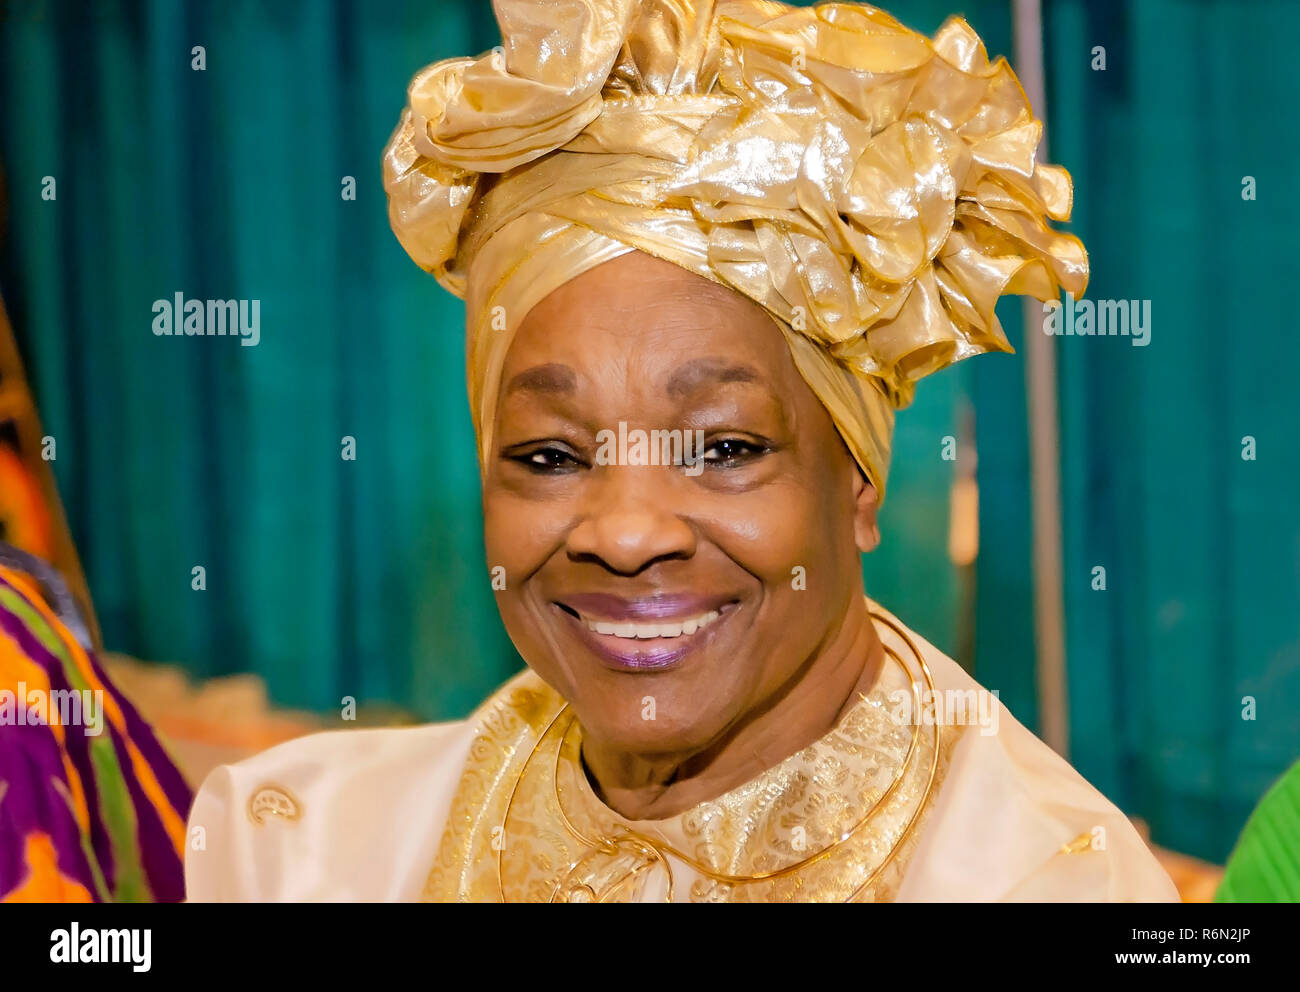 A Nigerian woman wears a traditional headdress at the 34th annual Mobile International Festival, Nov. 17, 2018, in Mobile, Alabama. - Stock Image